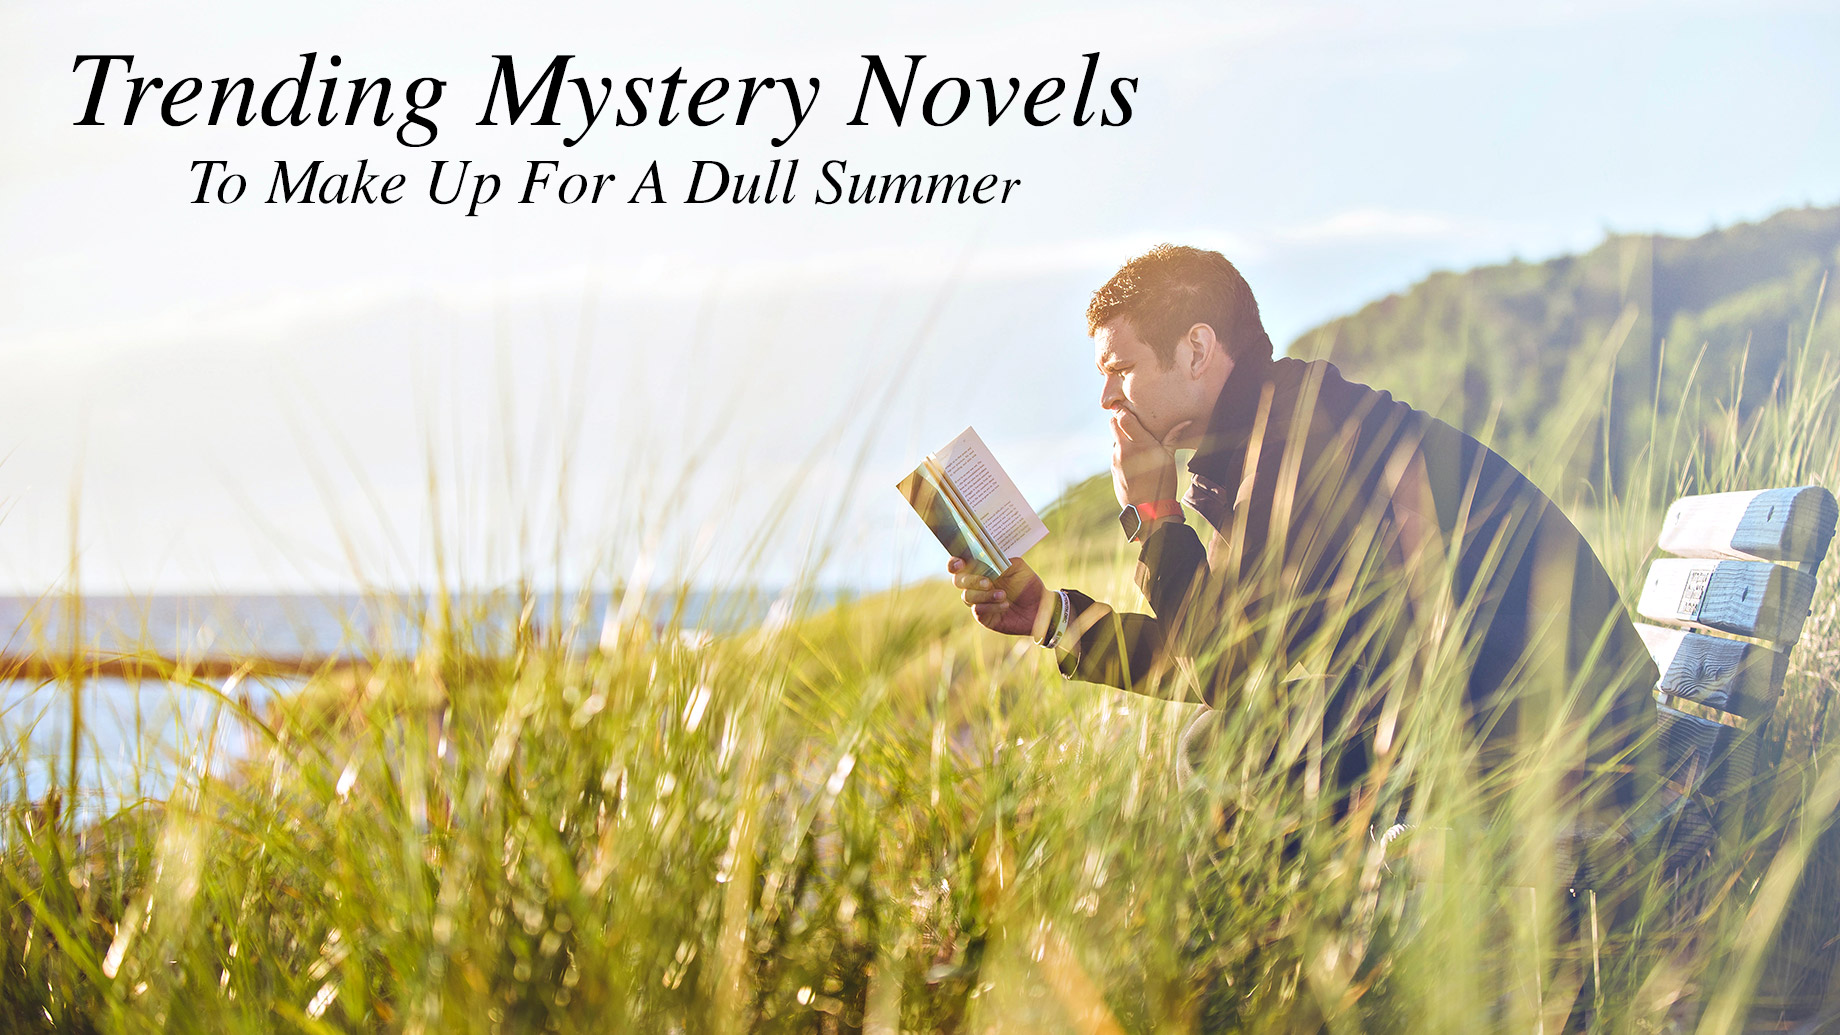 Trending Mystery Novels To Make Up For A Dull Summer